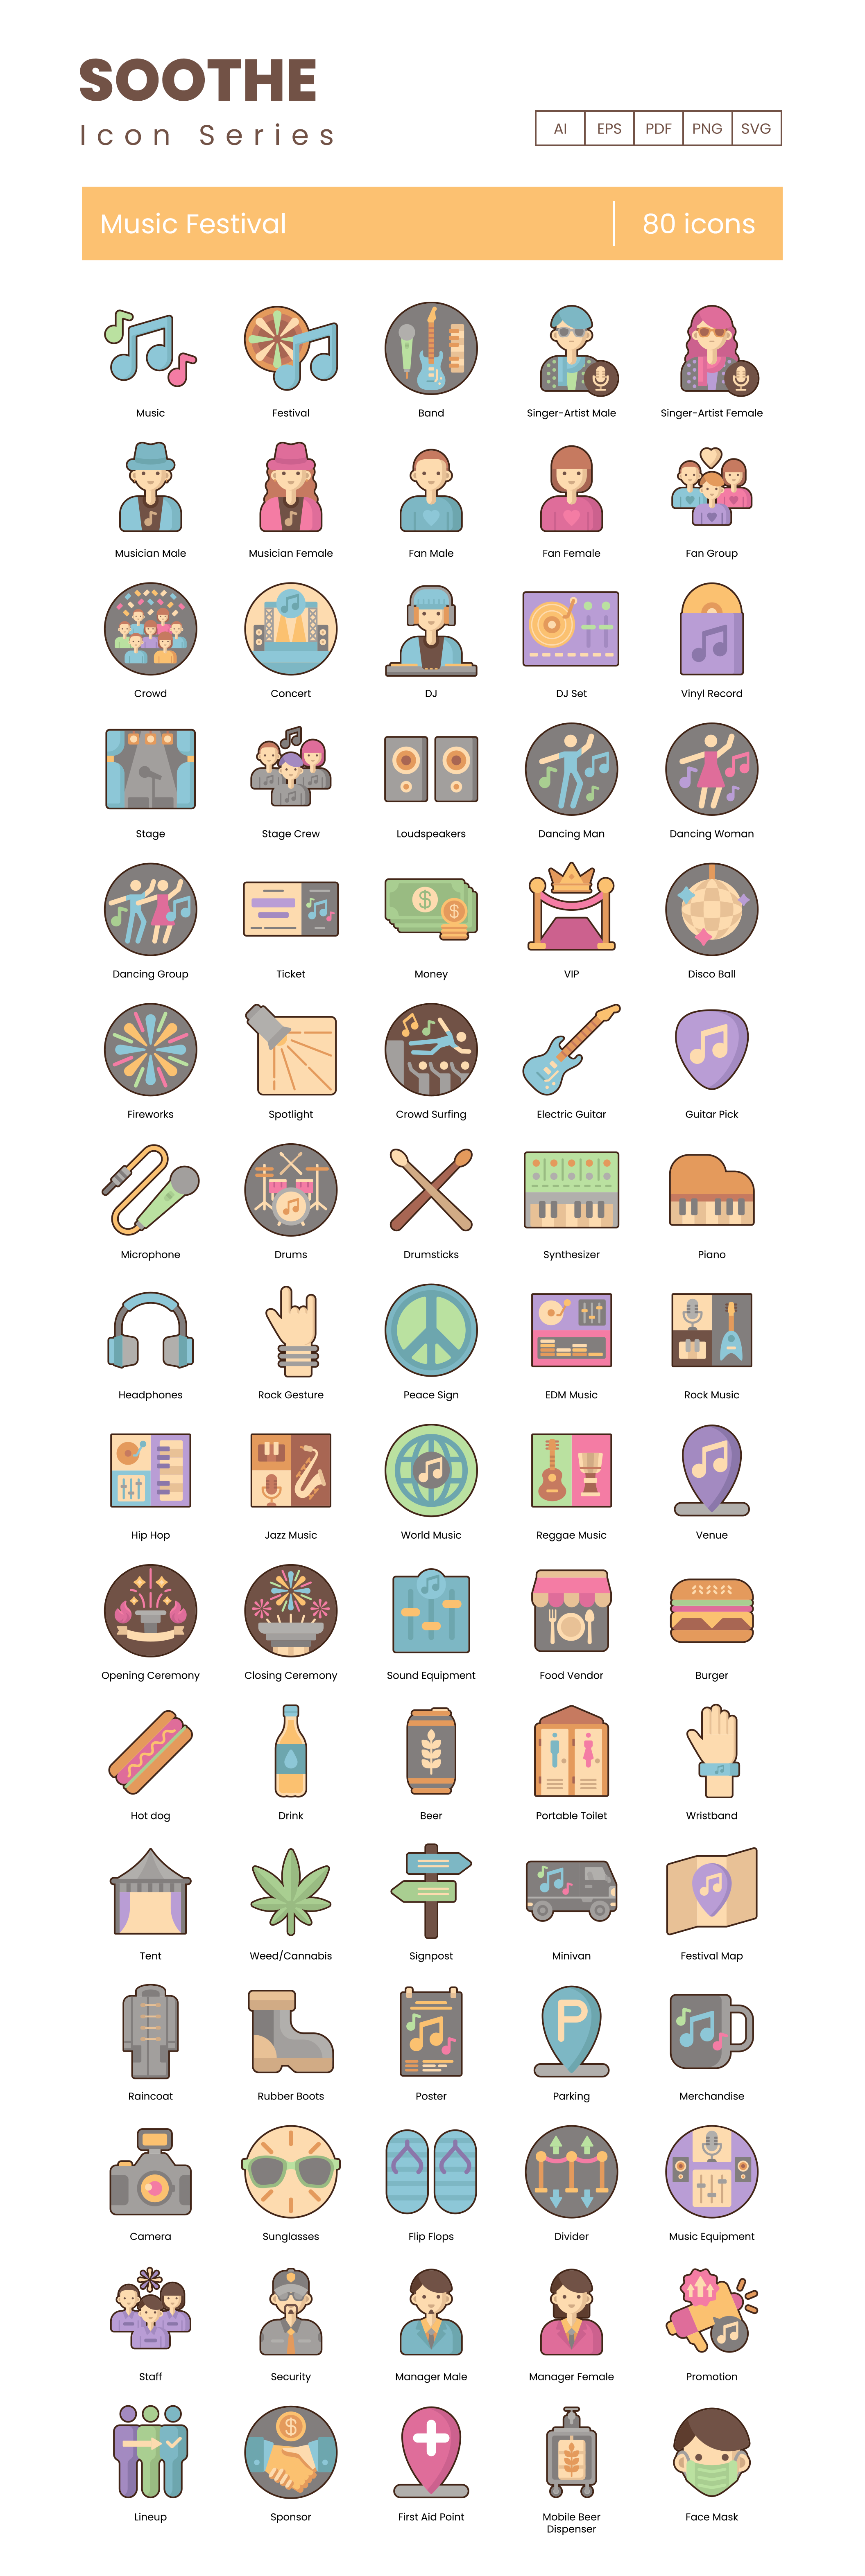 Music Festival Icon Set Preview Image